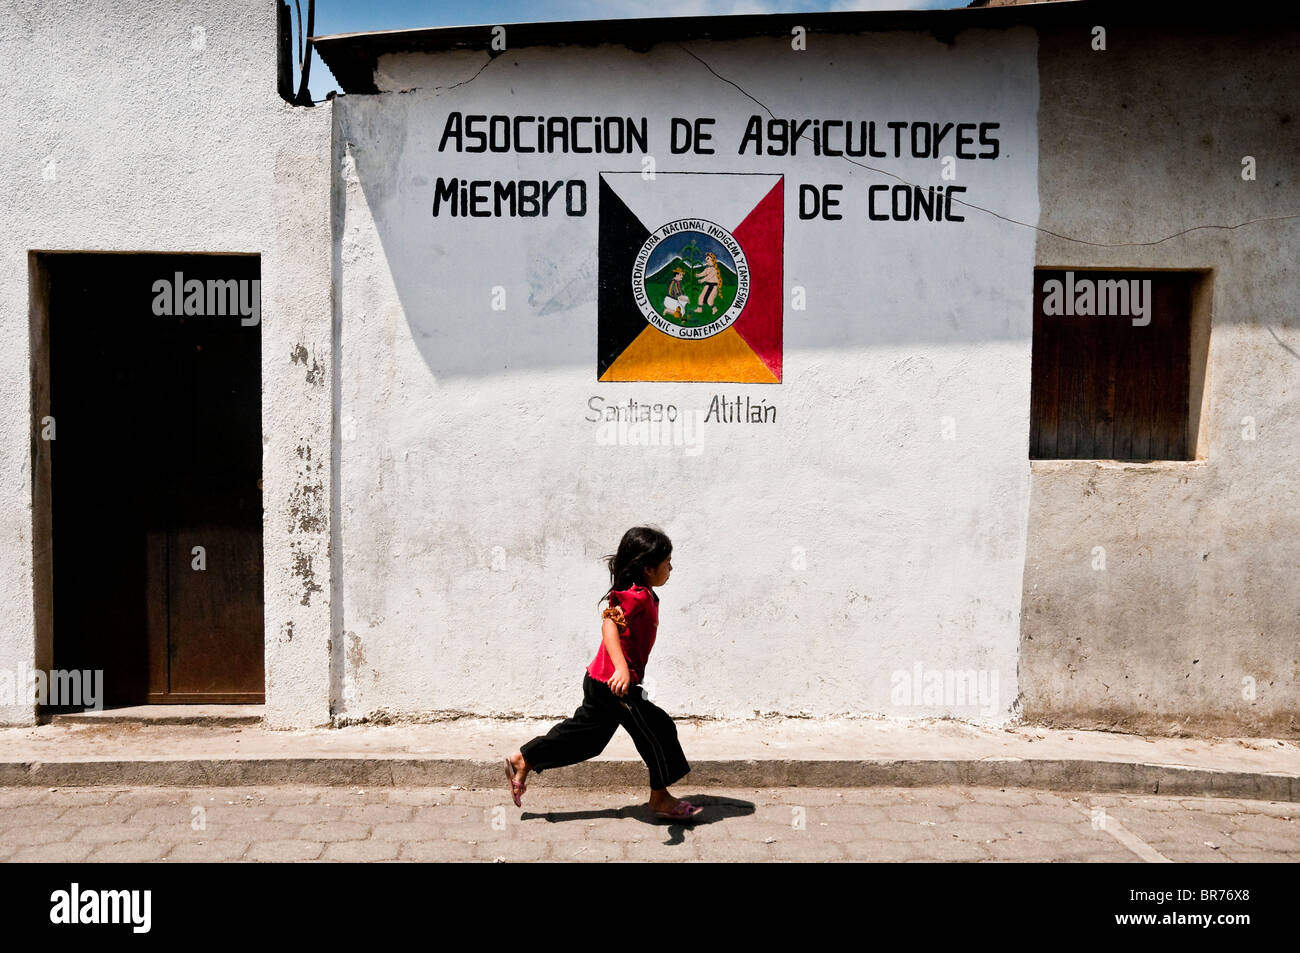 A child running in front the CONIC NGO bureau, San Juan la Laguna, Solola, Guatemala. - Stock Image